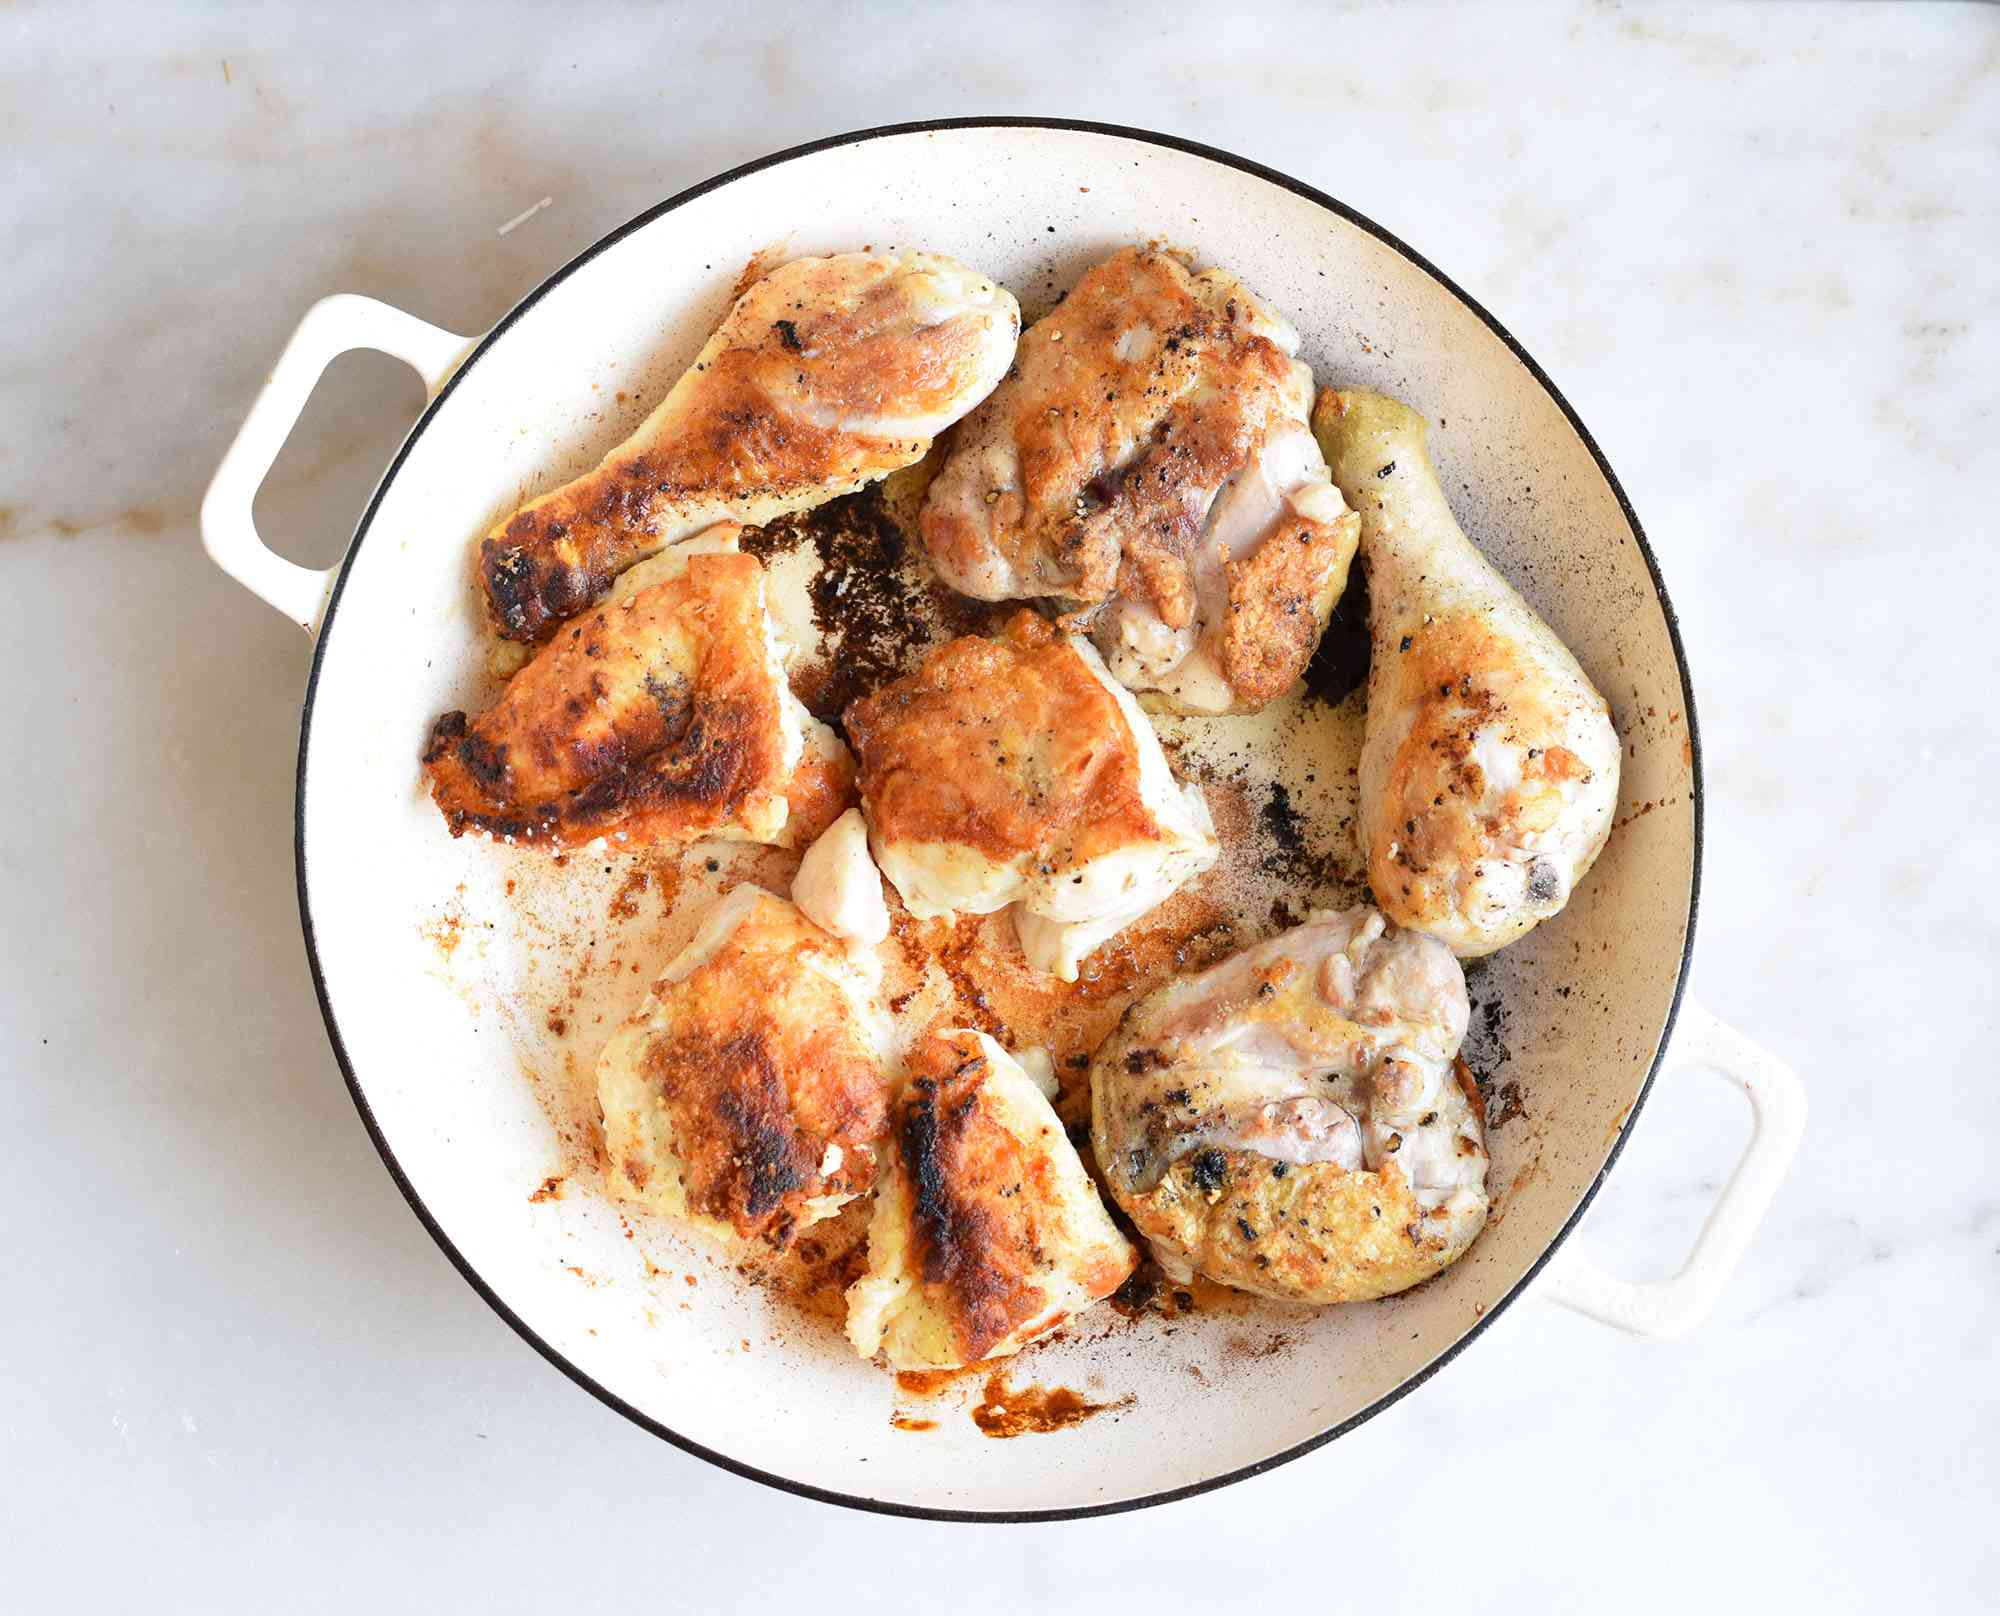 Chicken browned in a pan